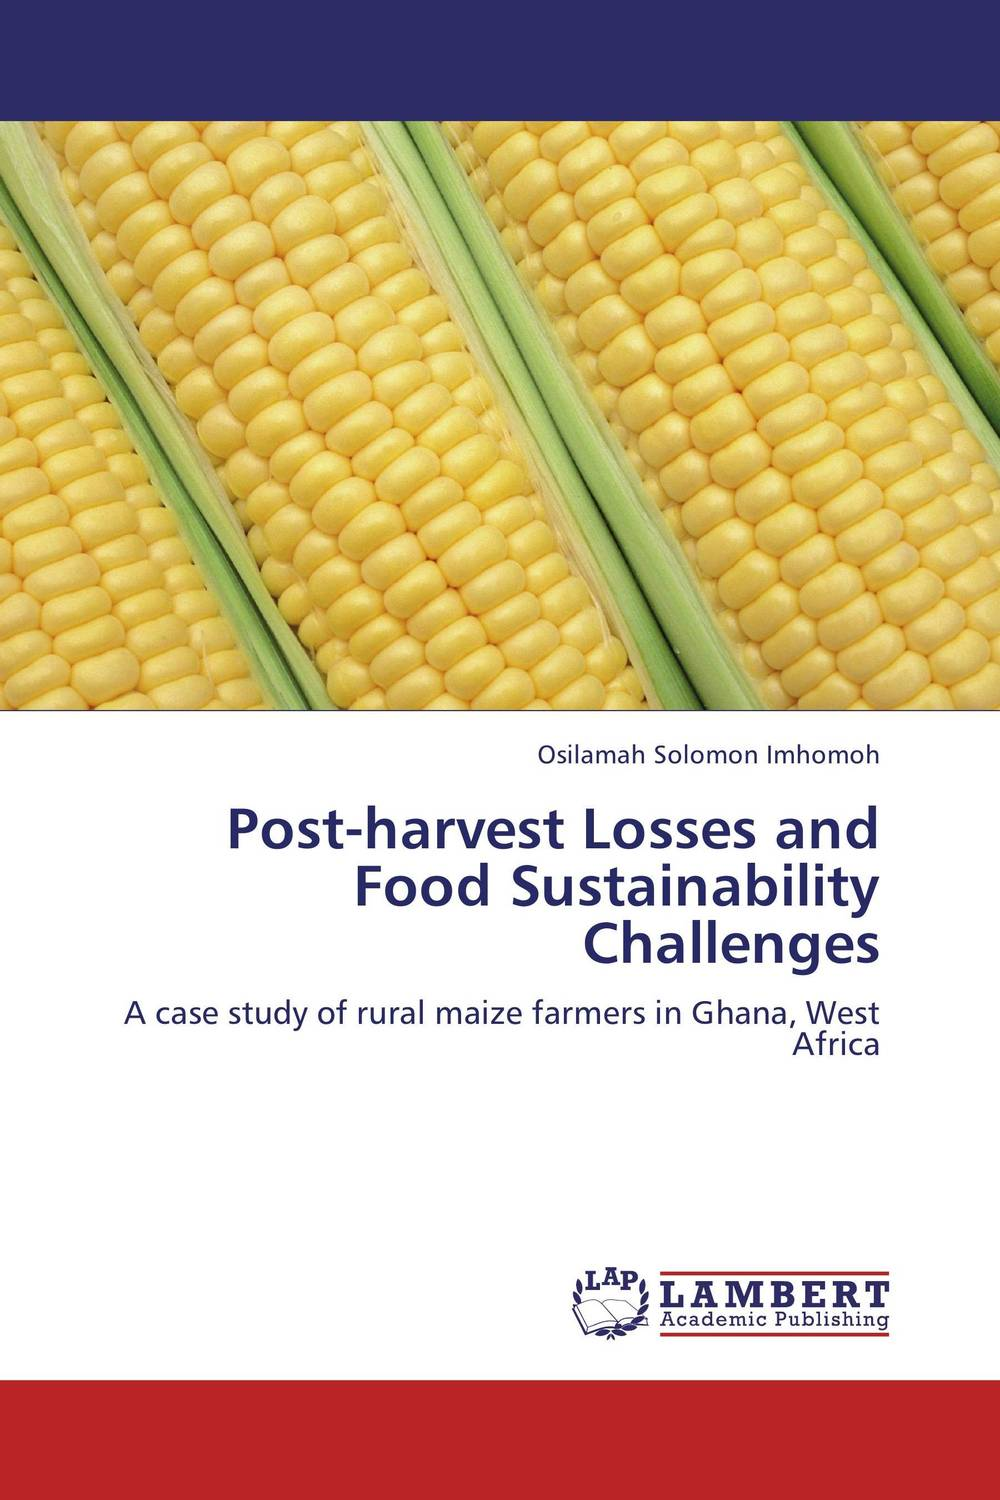 Post-harvest Losses and Food Sustainability Challenges cold storage accessibility and agricultural production by smallholders